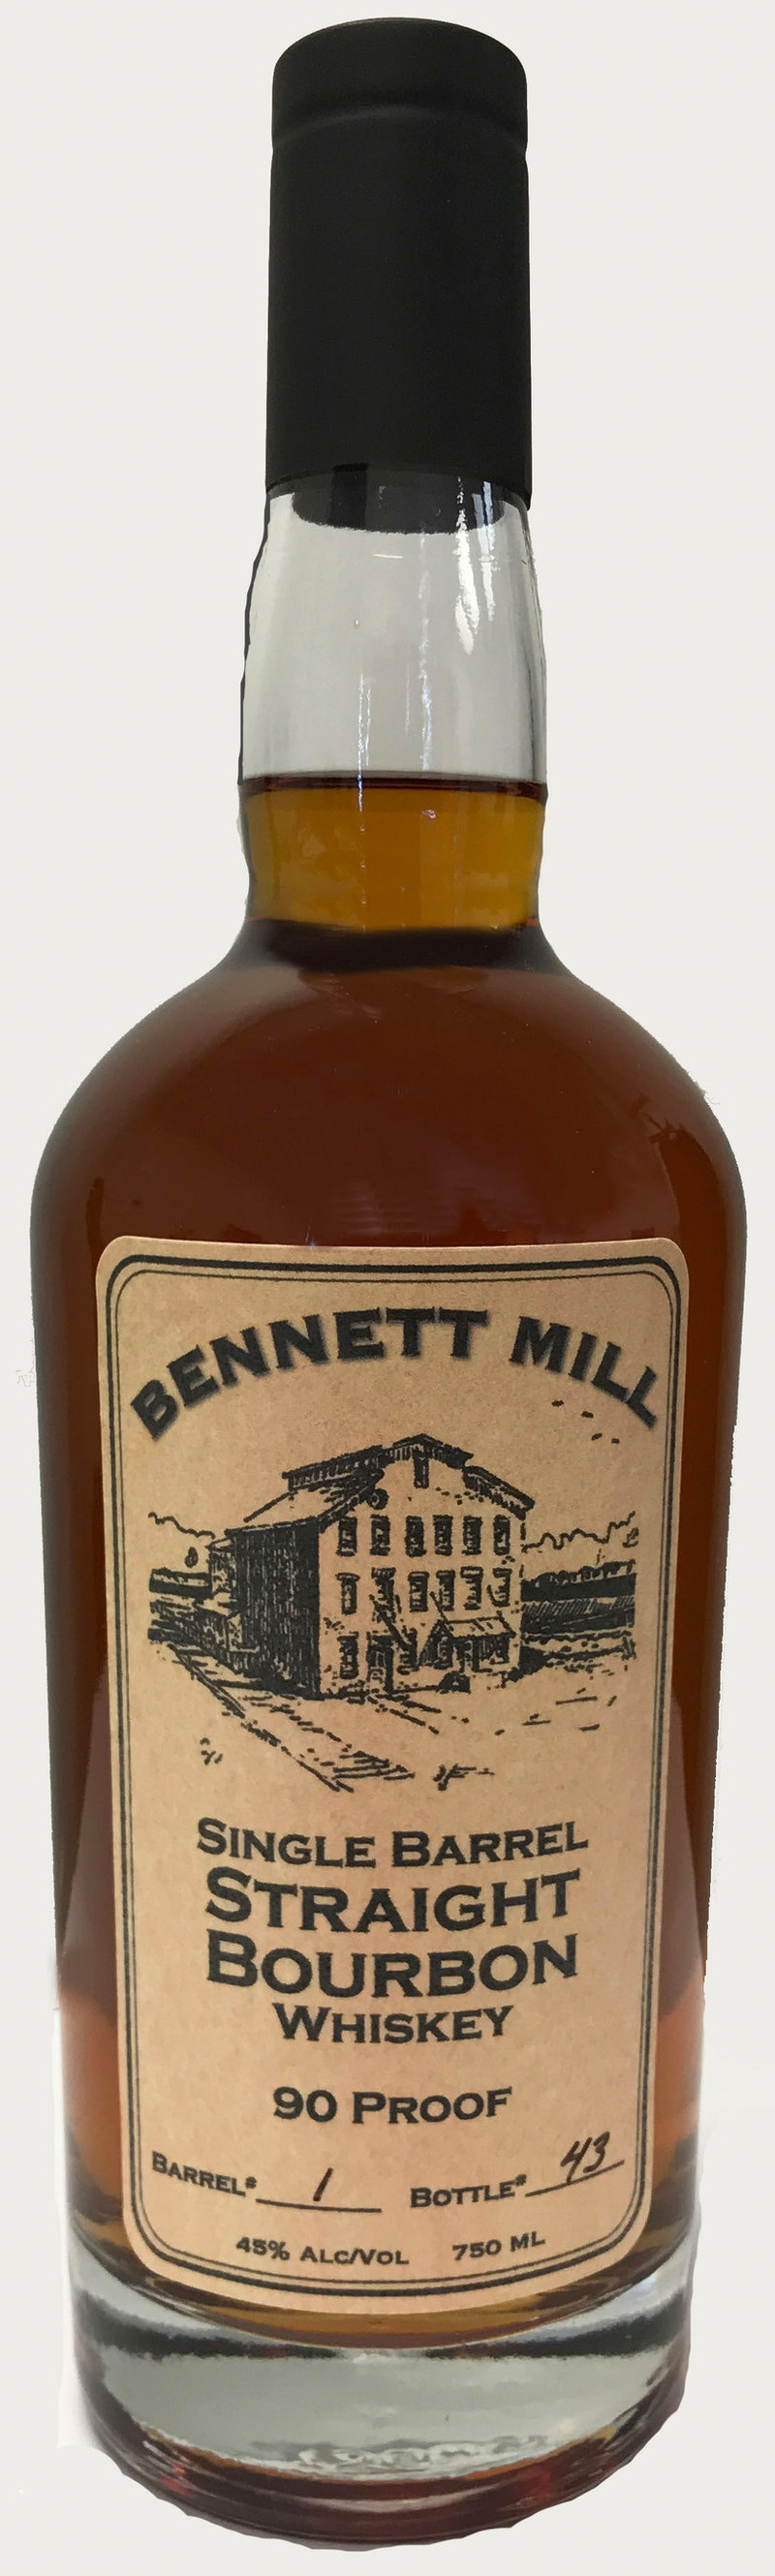 Bottle shot of Bennett Mill Single Barrel Straight Bourbon